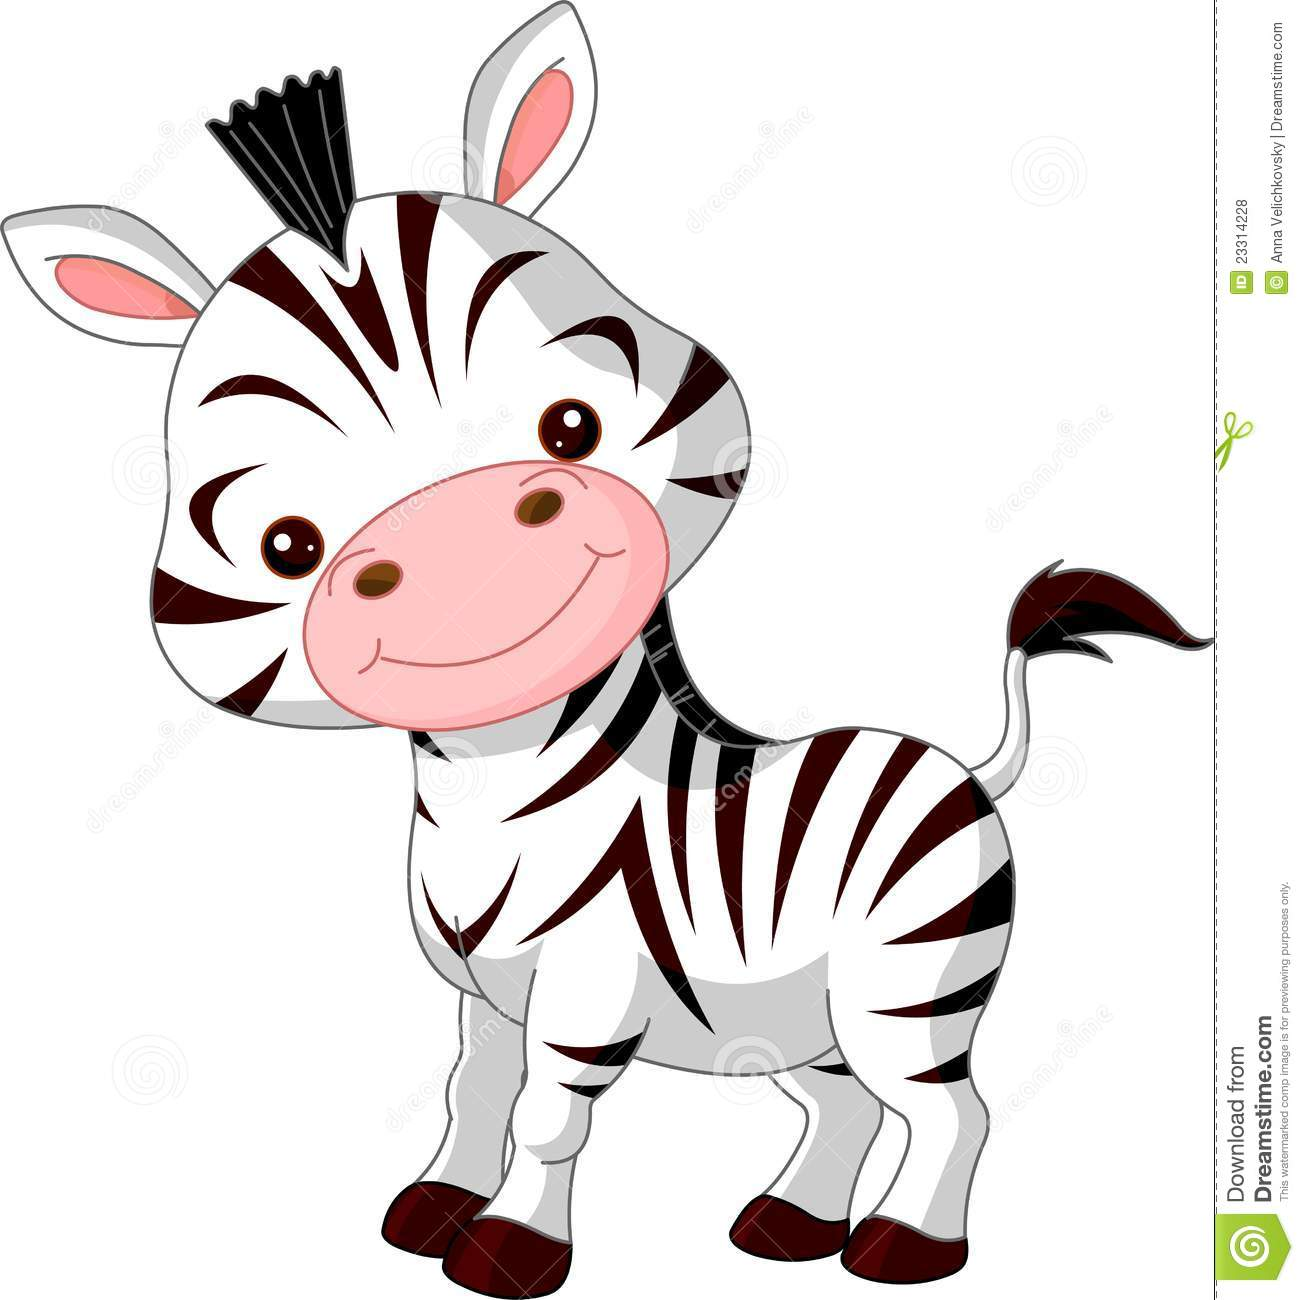 cute zebra clipart clipart panda free clipart images rh clipartpanda com Cute Cartoon Zebra Cute Cartoon Zebra